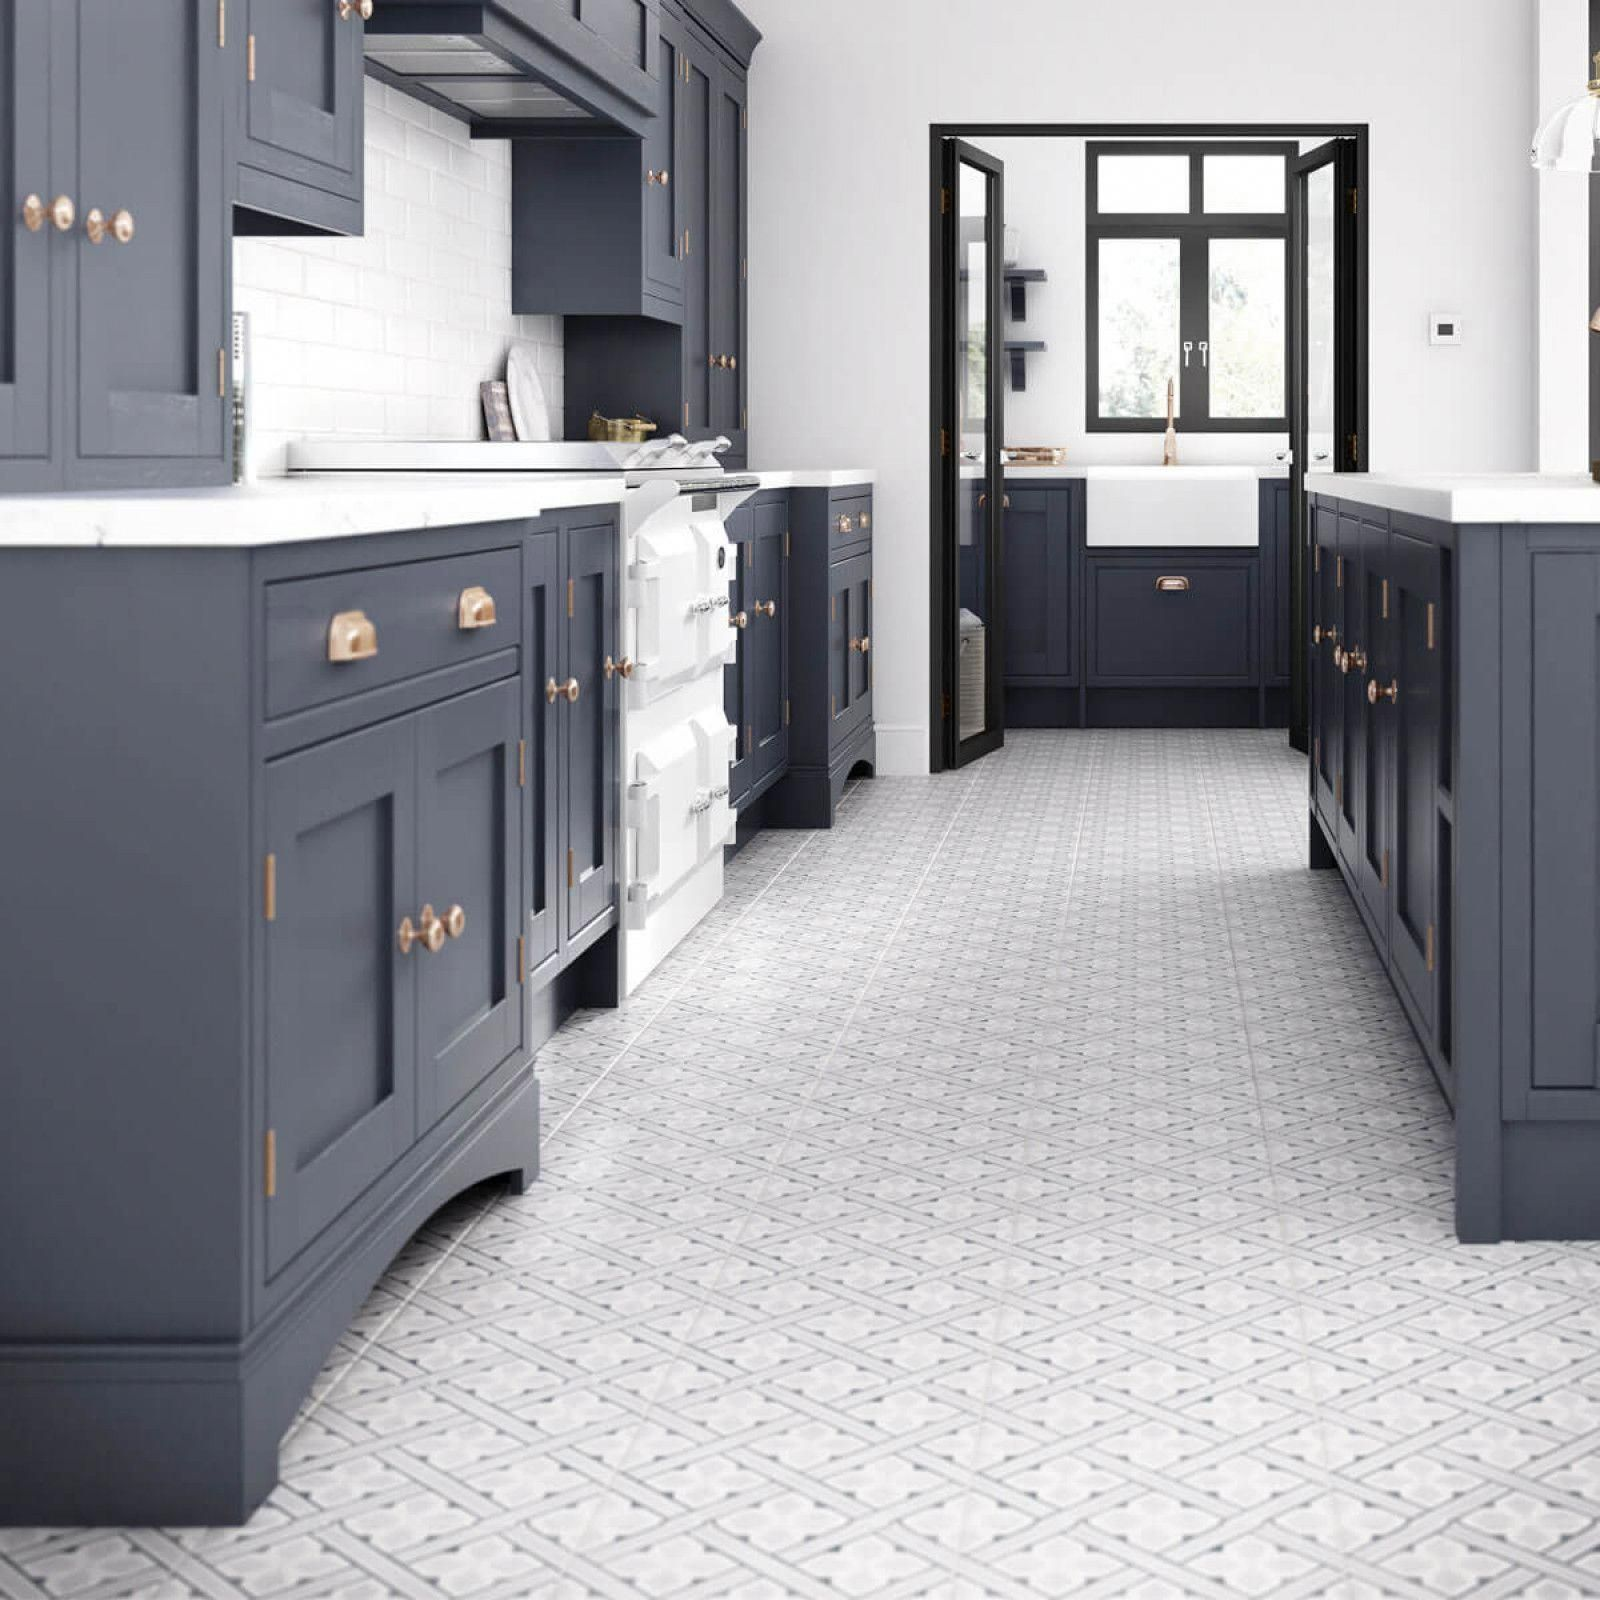 Although a classic grey ceramic tile this 331mm x 331mm